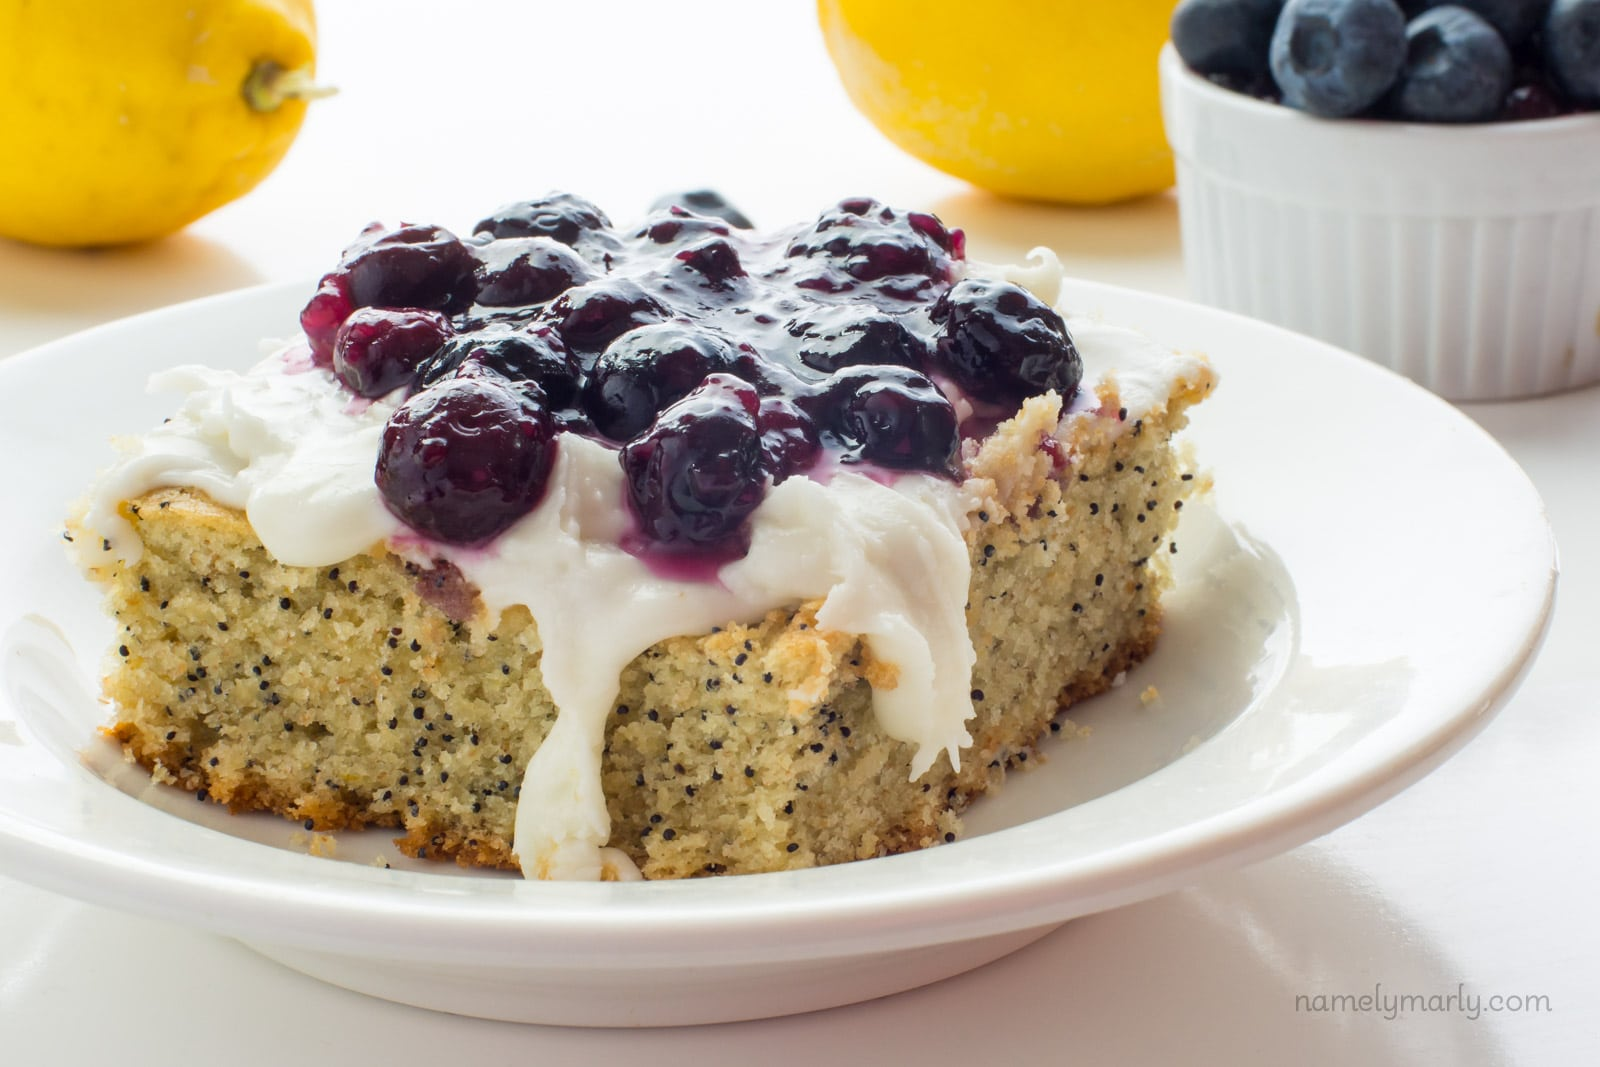 Lemon Avocado Cake with Blueberry Topping